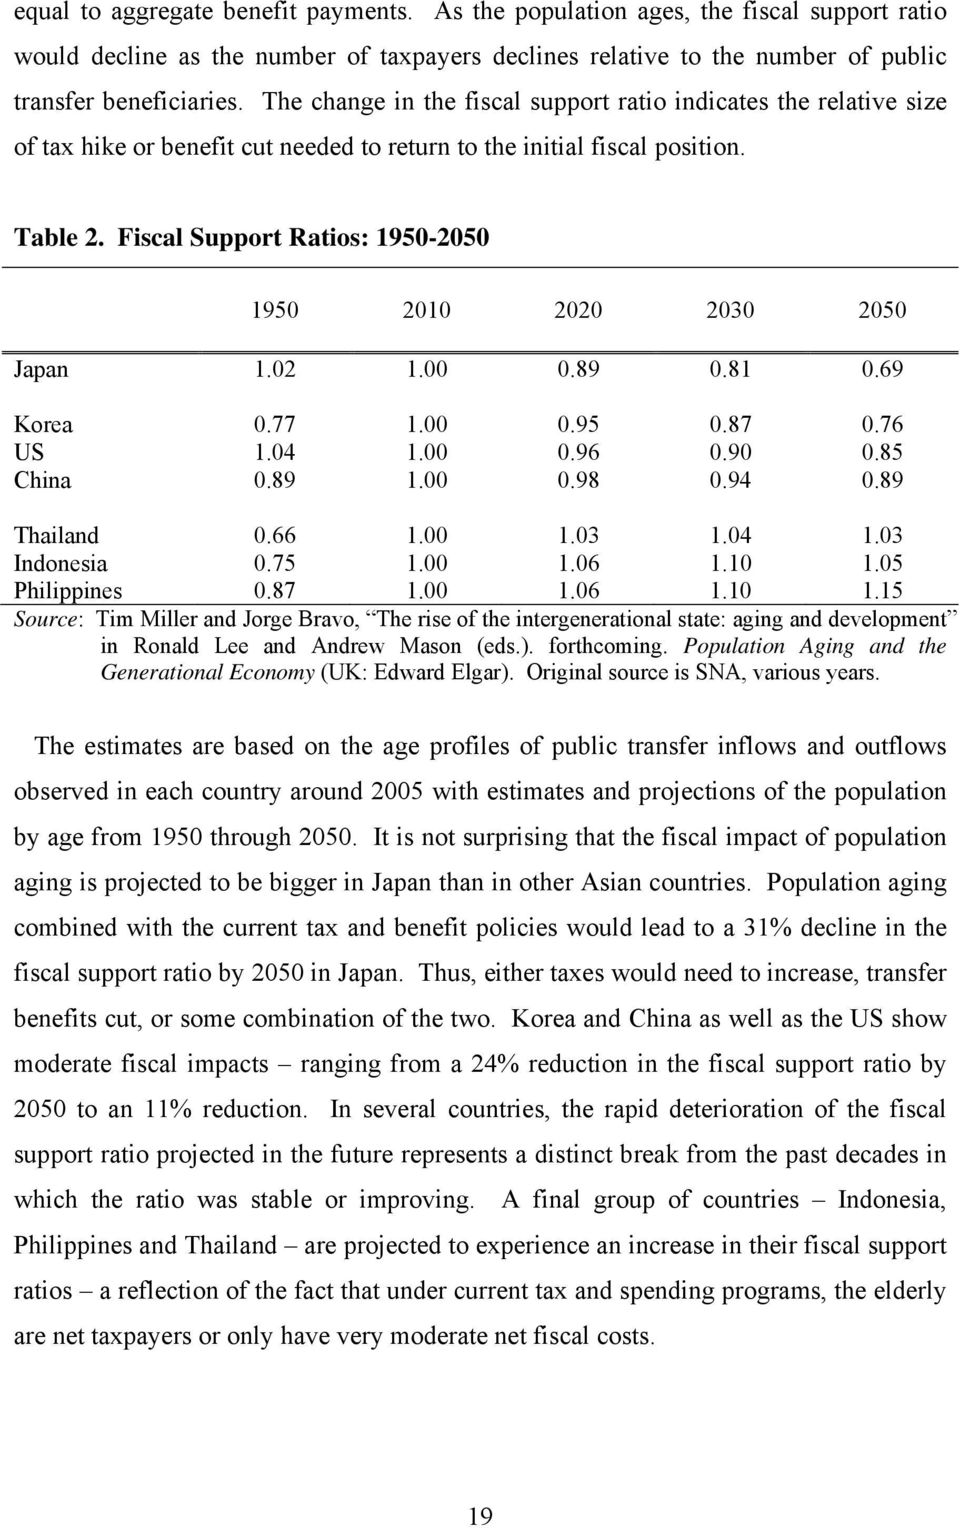 Fiscal Support Ratios: 1950-2050 1950 2010 2020 2030 2050 Japan 1.02 1.00 0.89 0.81 0.69 Korea 0.77 1.00 0.95 0.87 0.76 US 1.04 1.00 0.96 0.90 0.85 China 0.89 1.00 0.98 0.94 0.89 Thailand 0.66 1.00 1.